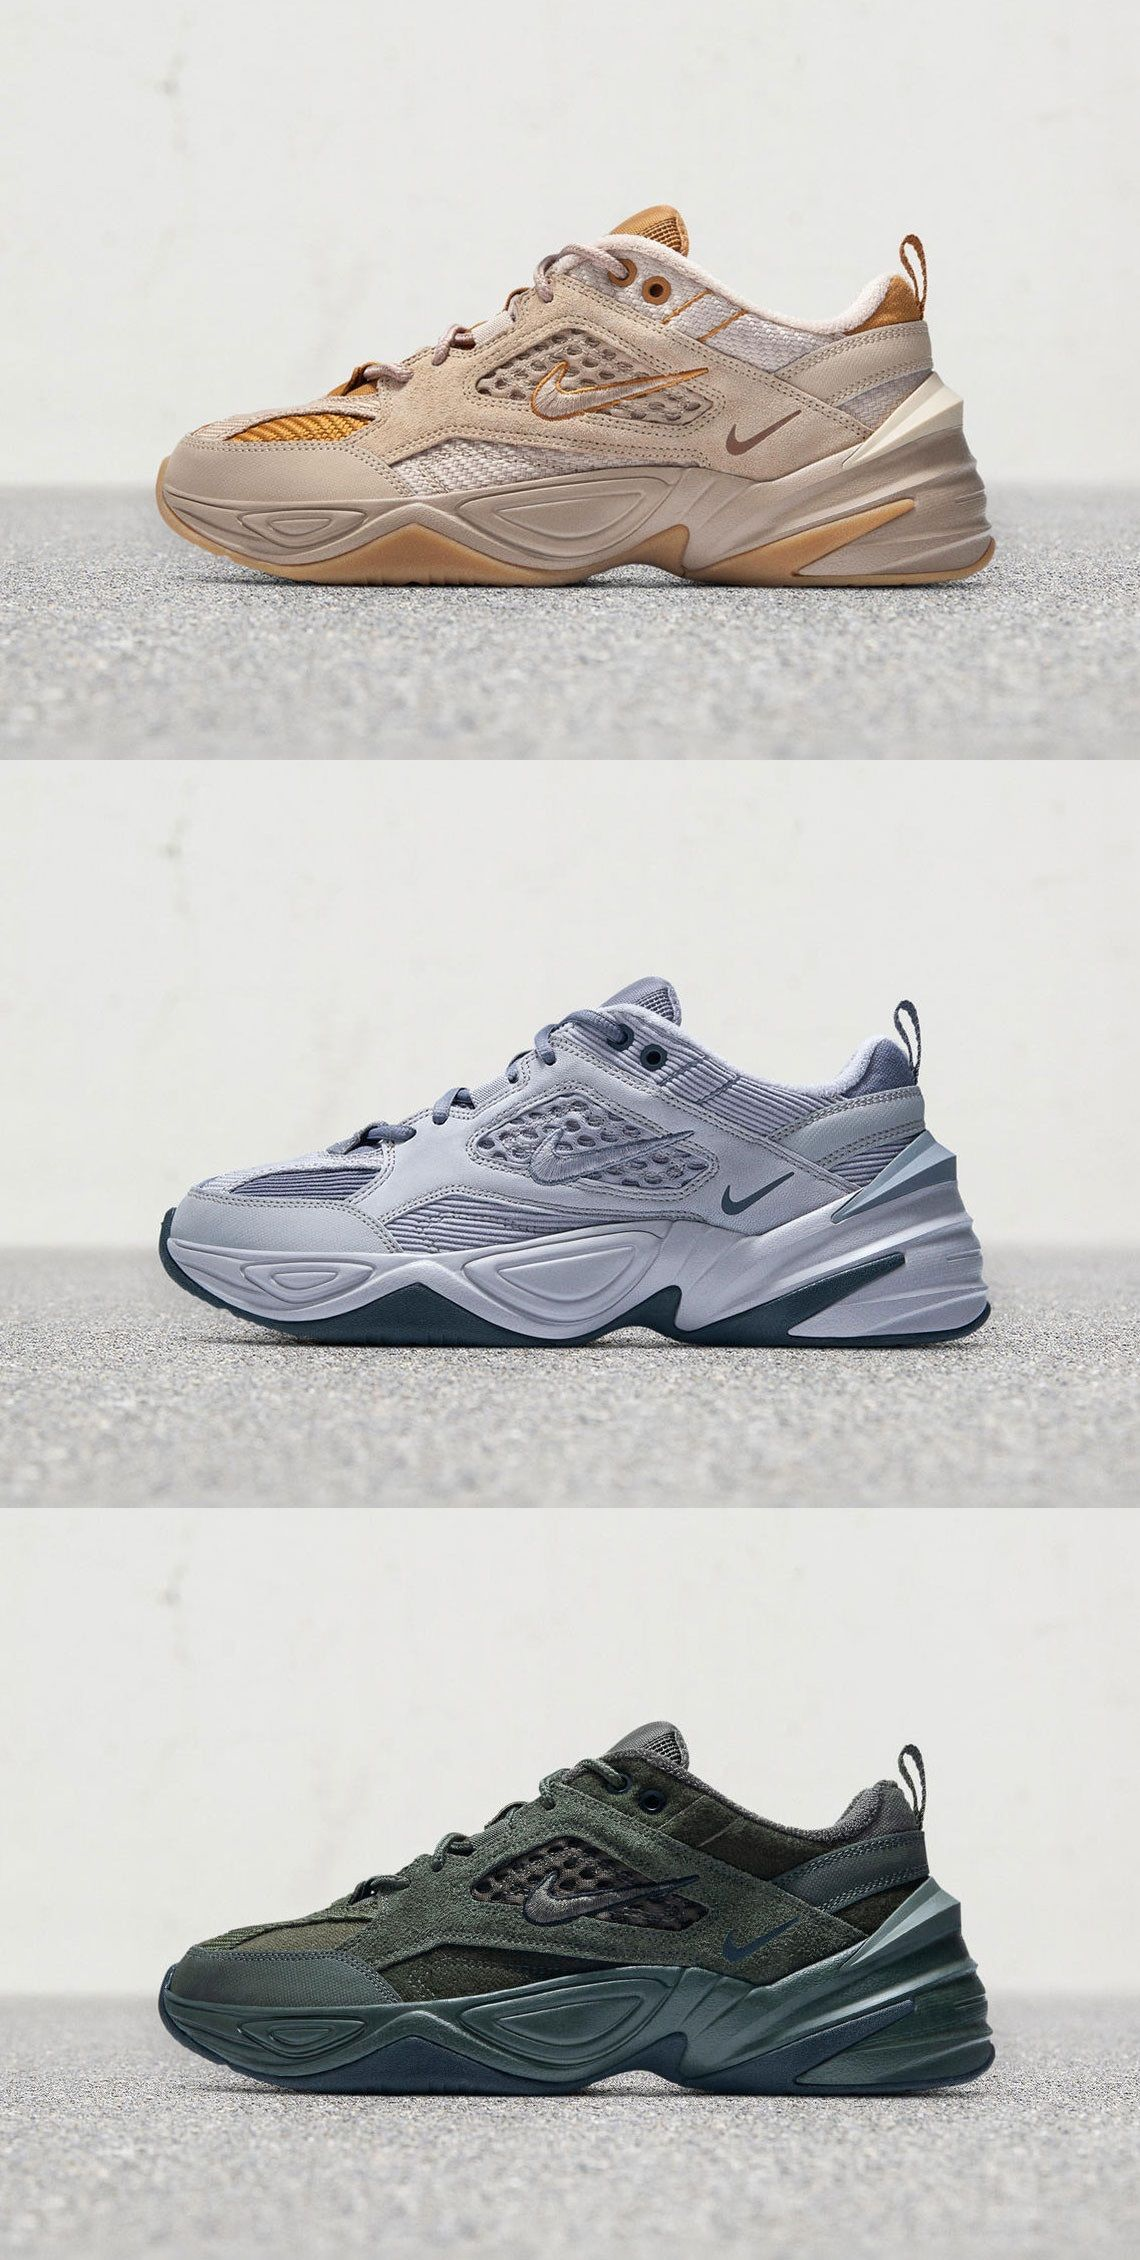 new style 15029 8fc4b Nike M2K Tekno   Sneakers in 2019   Sneakers, Nike, Adidas